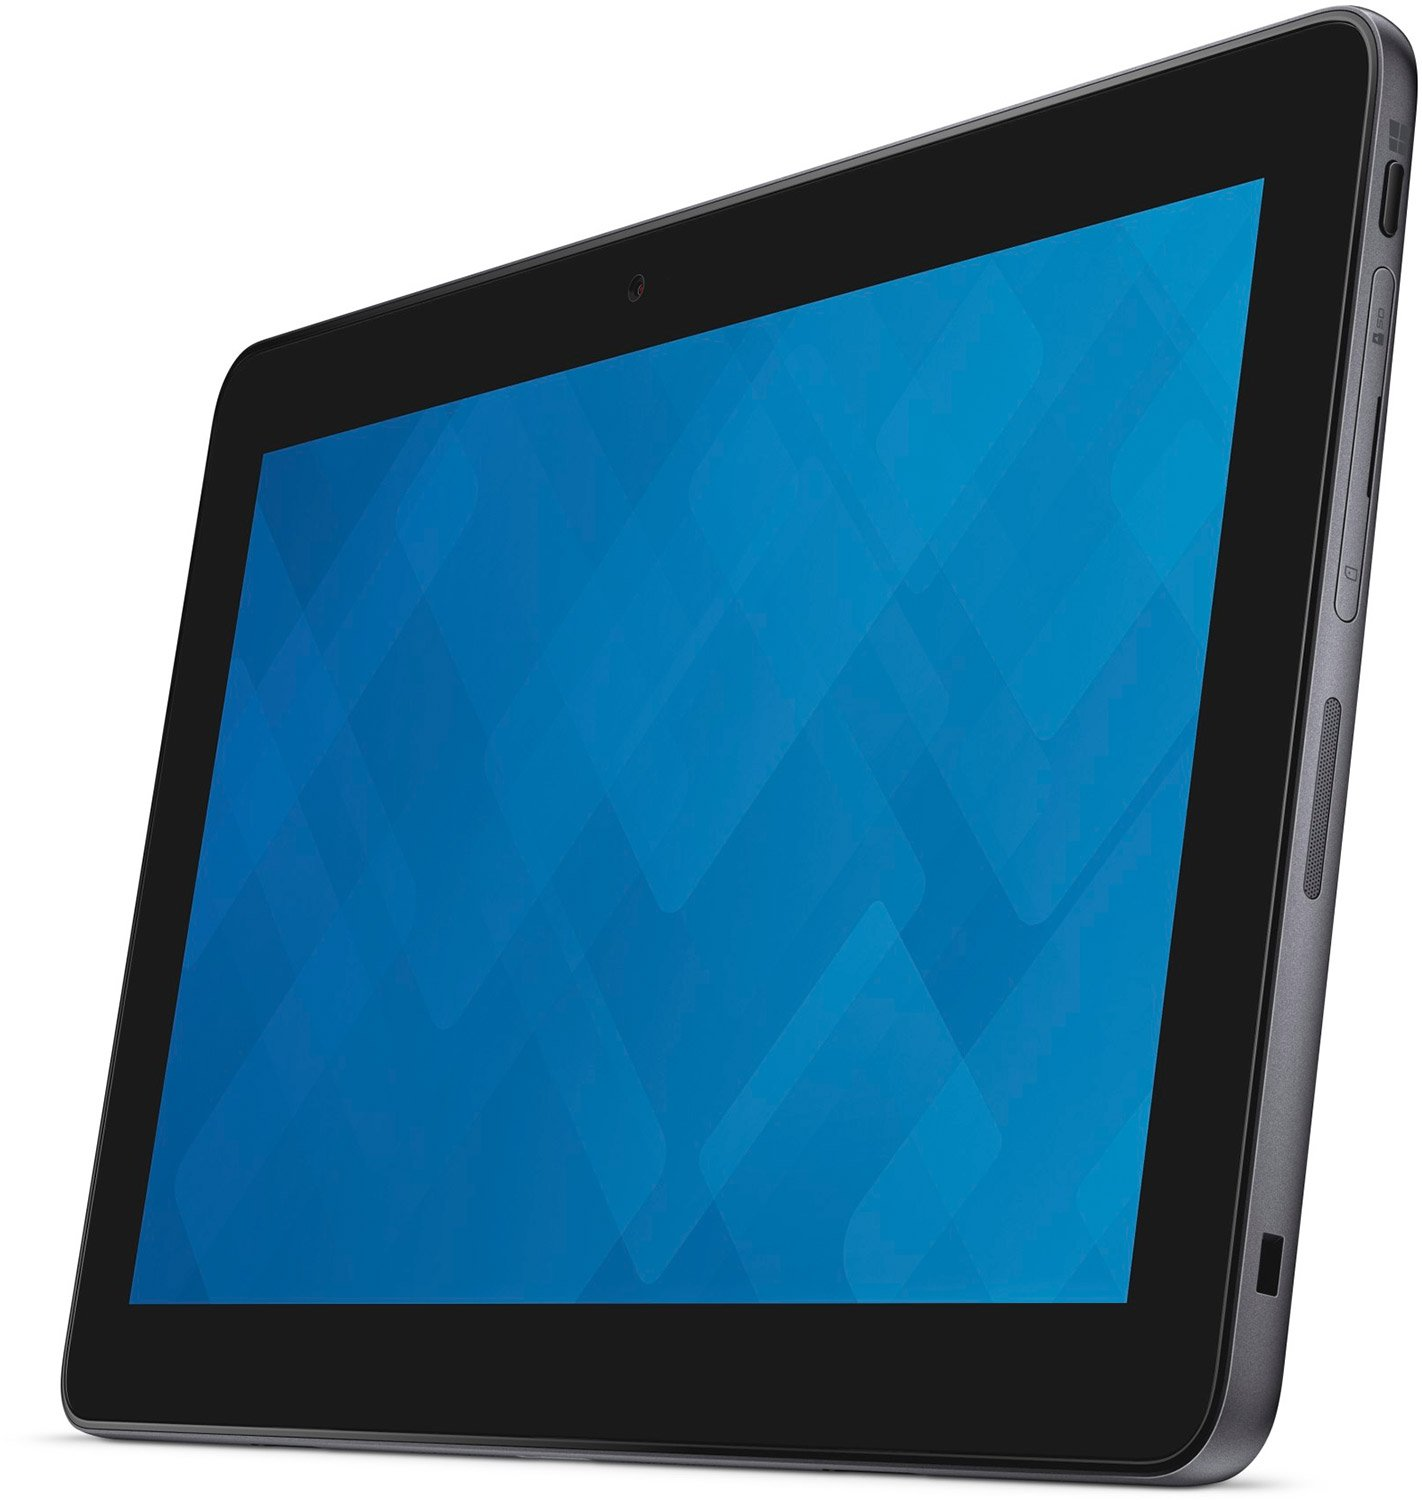 Dell Latitude 11 5000 5175 Tablet PC - Intel m5 6Y57 CPU, 8GB RAM, 256GB SSD, NO OPTICAL, 10.8'' FHD Display, Windows 10 Pro (Certified Refurbished) by Dell (Image #1)